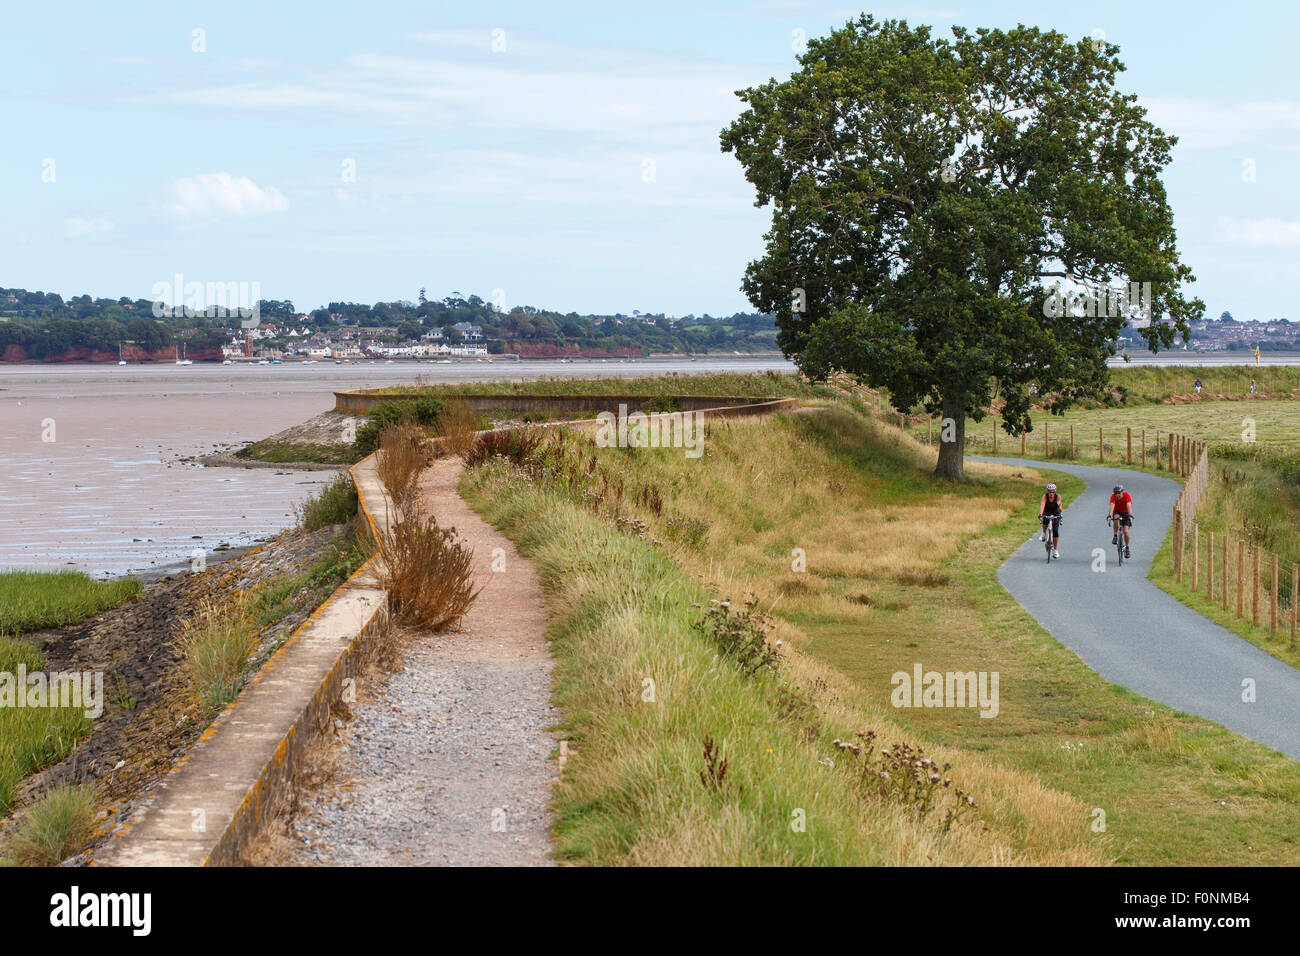 Cyclists on west side of river Exe trail and Coast path, heading north. - Stock Image